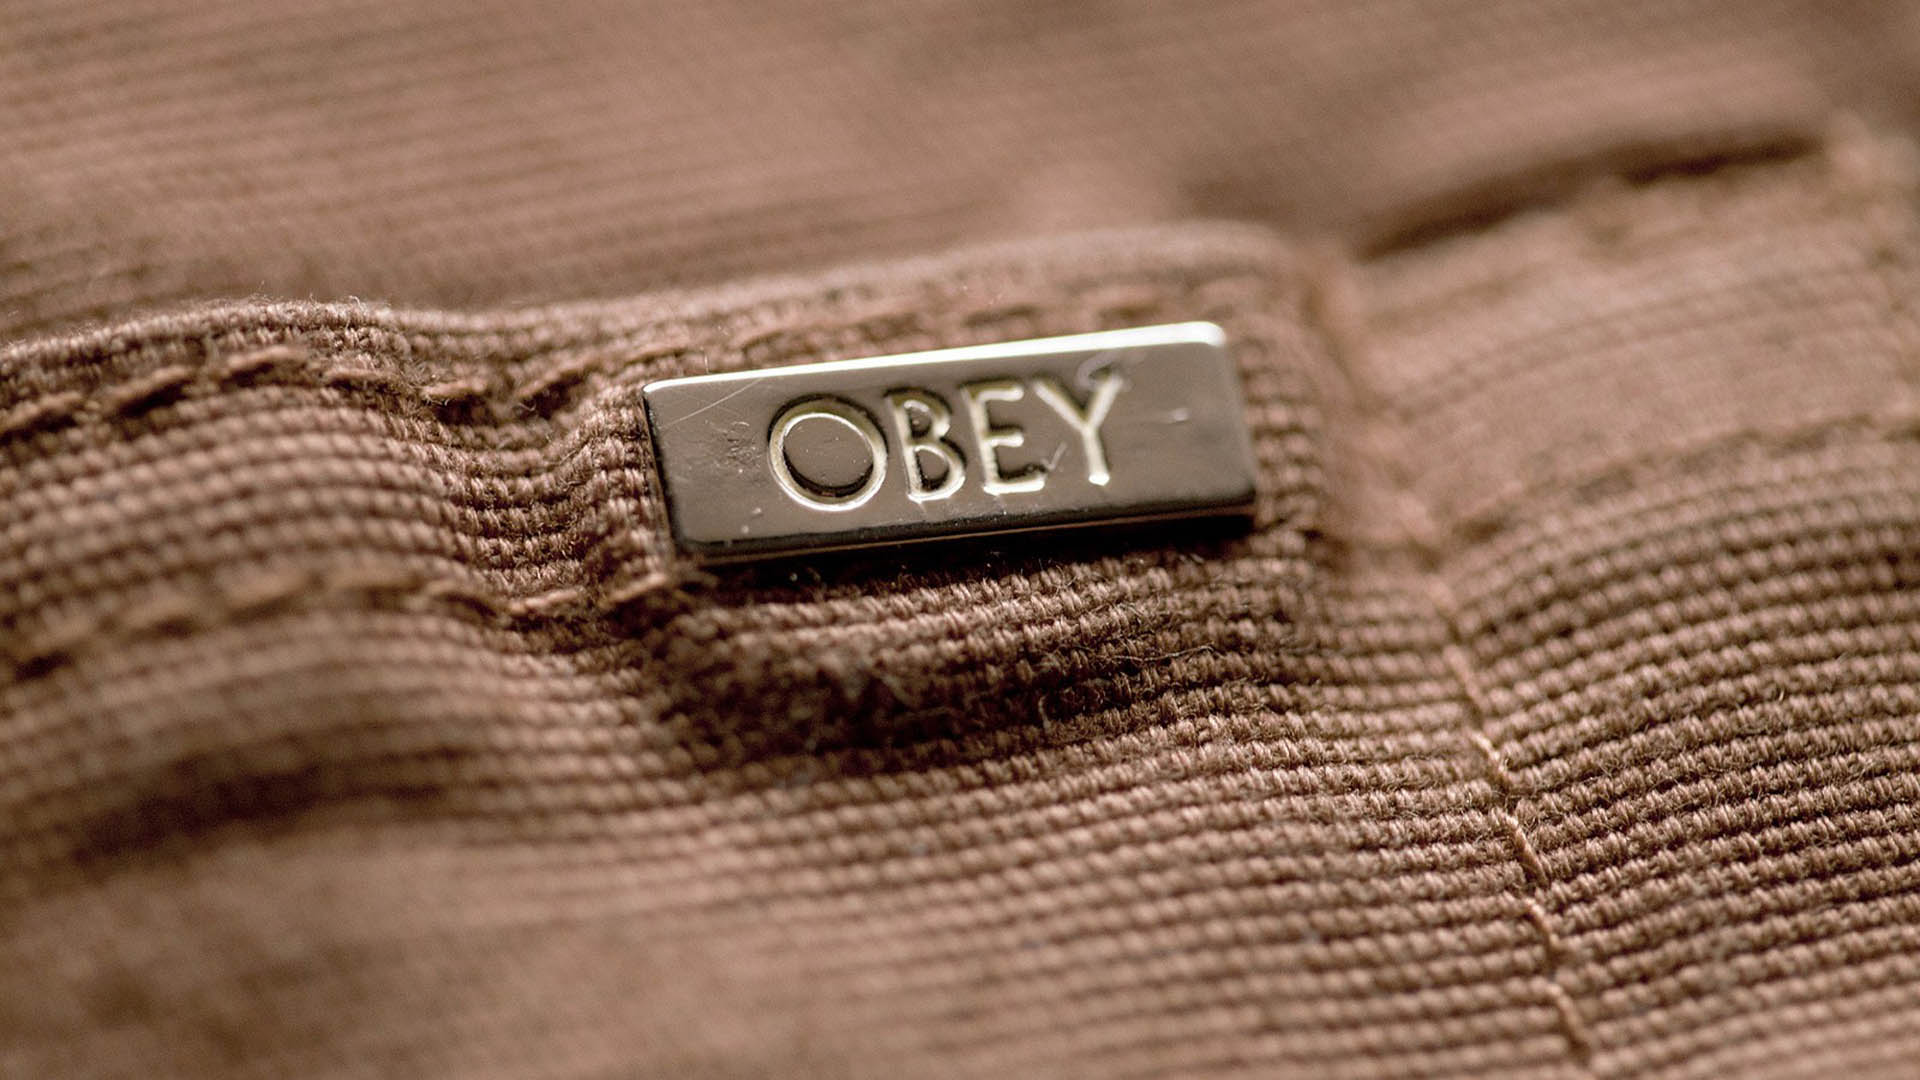 Obey Wallpaper HD 1920x1080